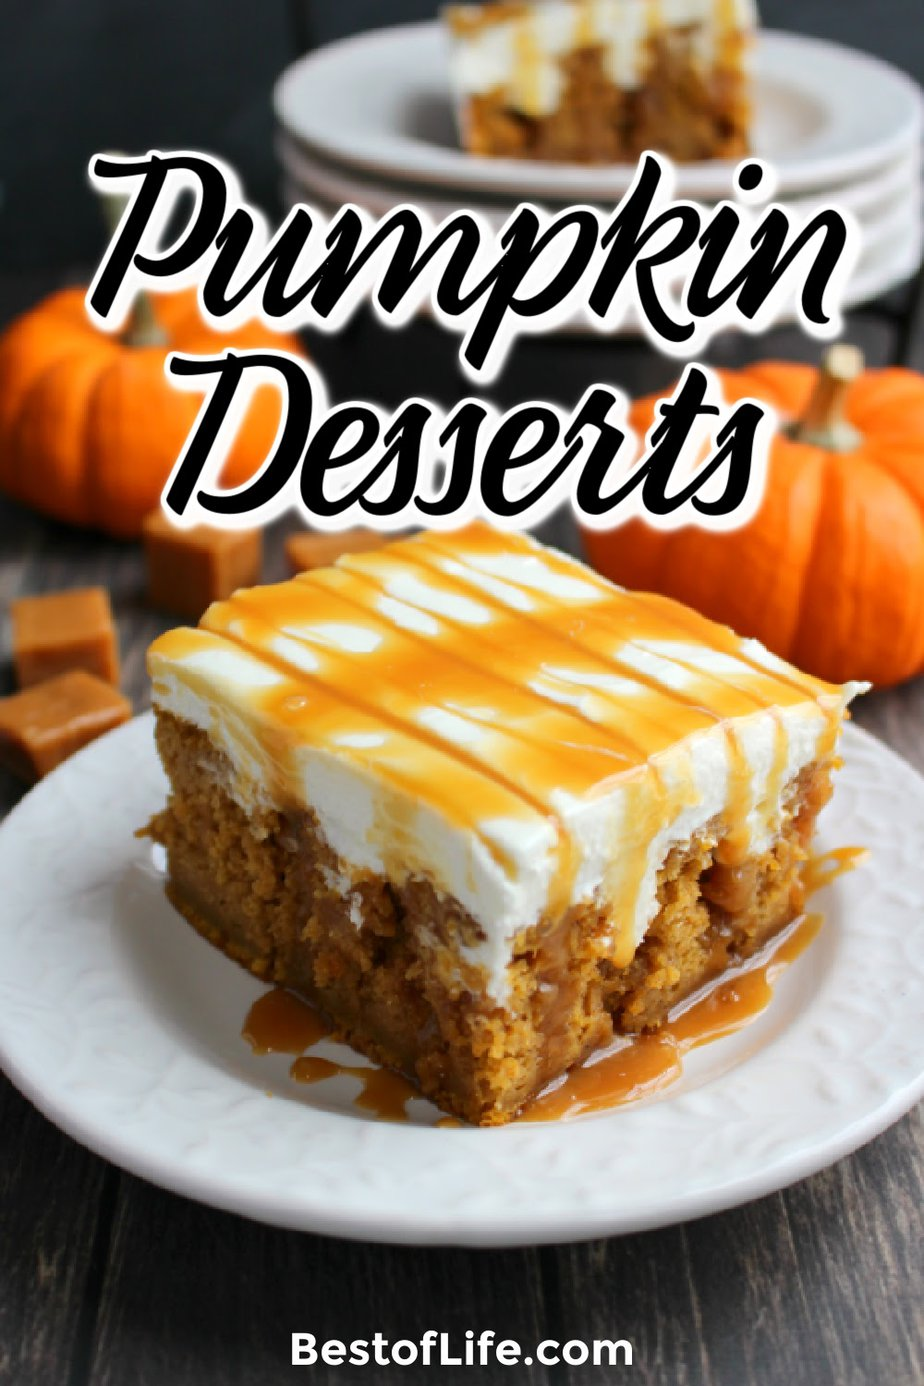 Nothing says fall like pumpkin! Enjoy these delicious pumpkin dessert recipes in fall and for Thanksgiving! Fall Recipes | Pumpkin Seed Recipes | Dessert Recipes | Easy Fall Recipes | Recipes with Pumpkin | Fall Dessert Recipes | Halloween Party Recipes | Thanksgiving Dessert Recipes | Recipes for Thanksgiving | Recipes for Halloween #halloween #thanksgiving #fallrecipes via @thebestoflife